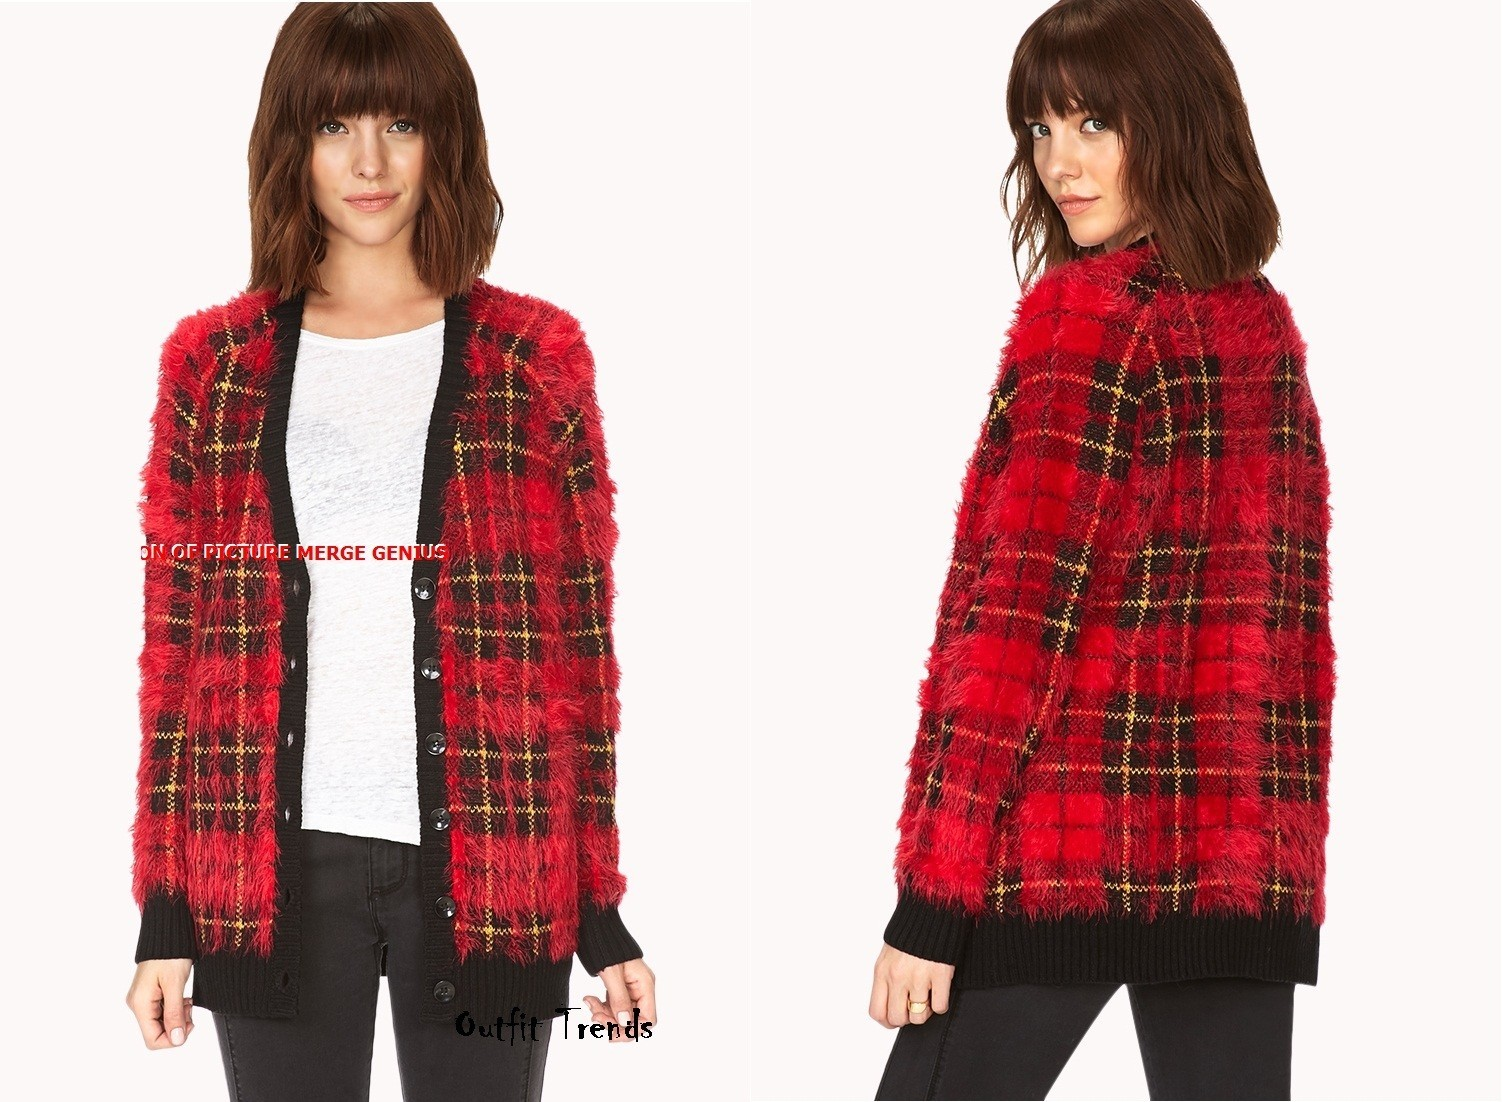 Hot Red Tartan Shag Cardigan